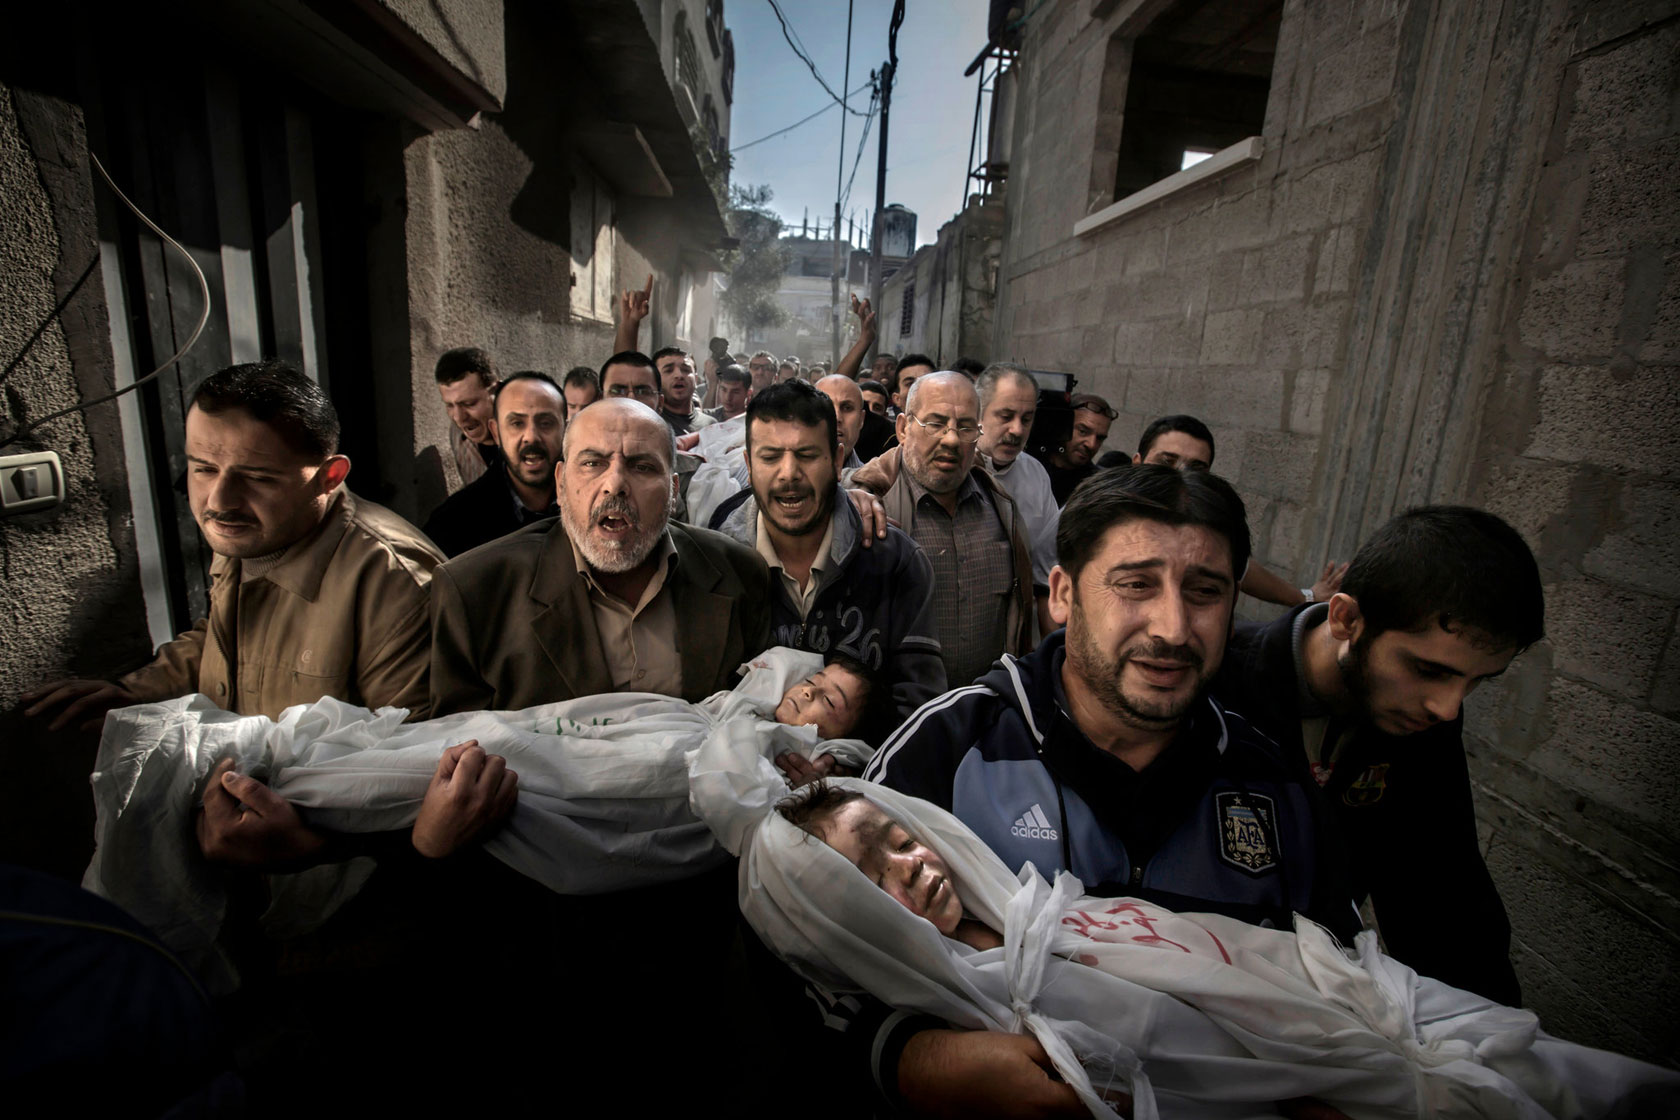 Mit seiner Aufnahme zweier toter Kinder und einer trauernden Menschenmenge in Gaza-Stadt hat Paul Hansen den renommierten World Press Photo Award gewonnen.